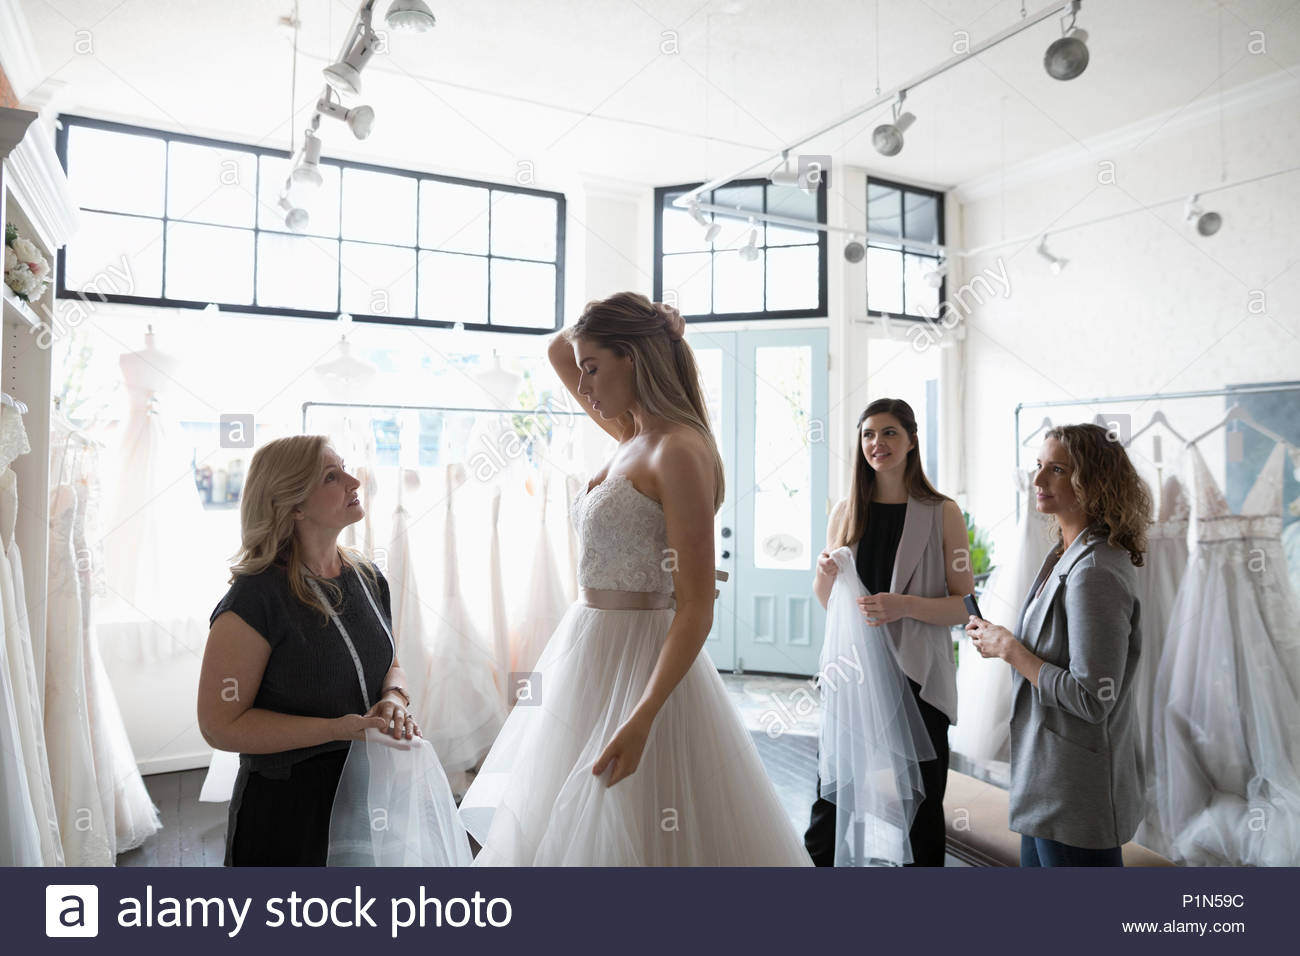 Bride and friends at wedding dress fitting in bridal boutique - Stock Image